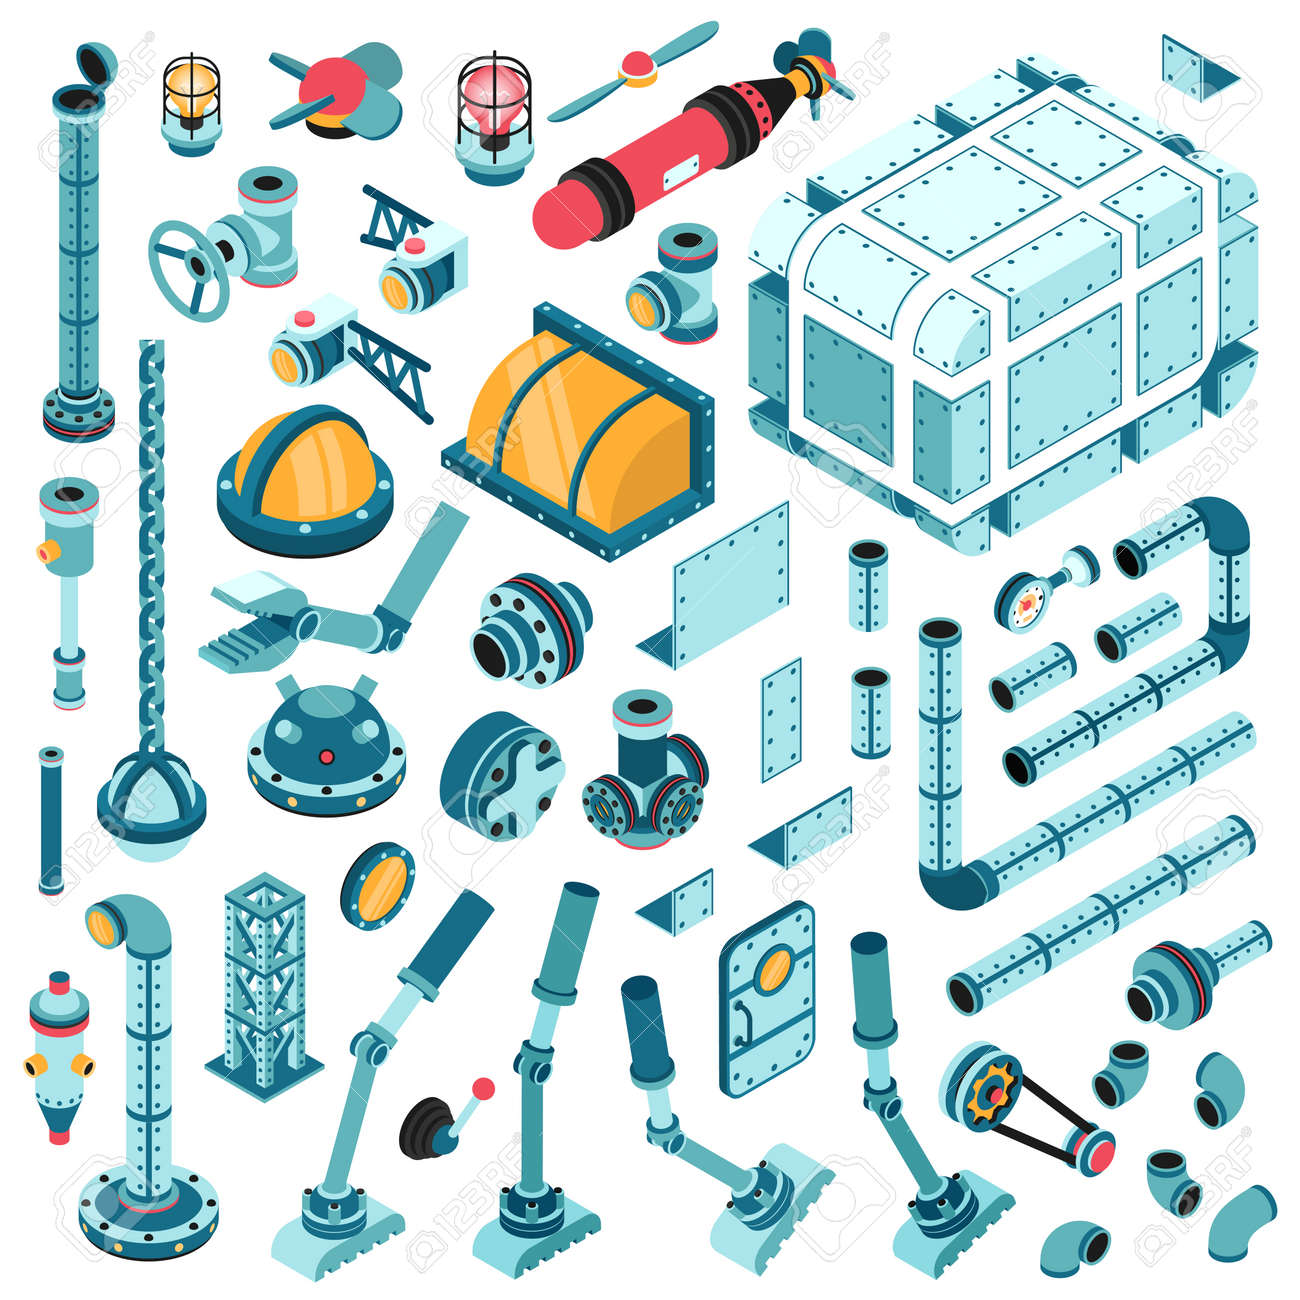 Isometric spare parts for the assembly of industrial machines and aggregates. Pipes, valves, pumps, flanges, fittings, splitters, lids, fittings, devices and so on. Stock Vector - 92406297